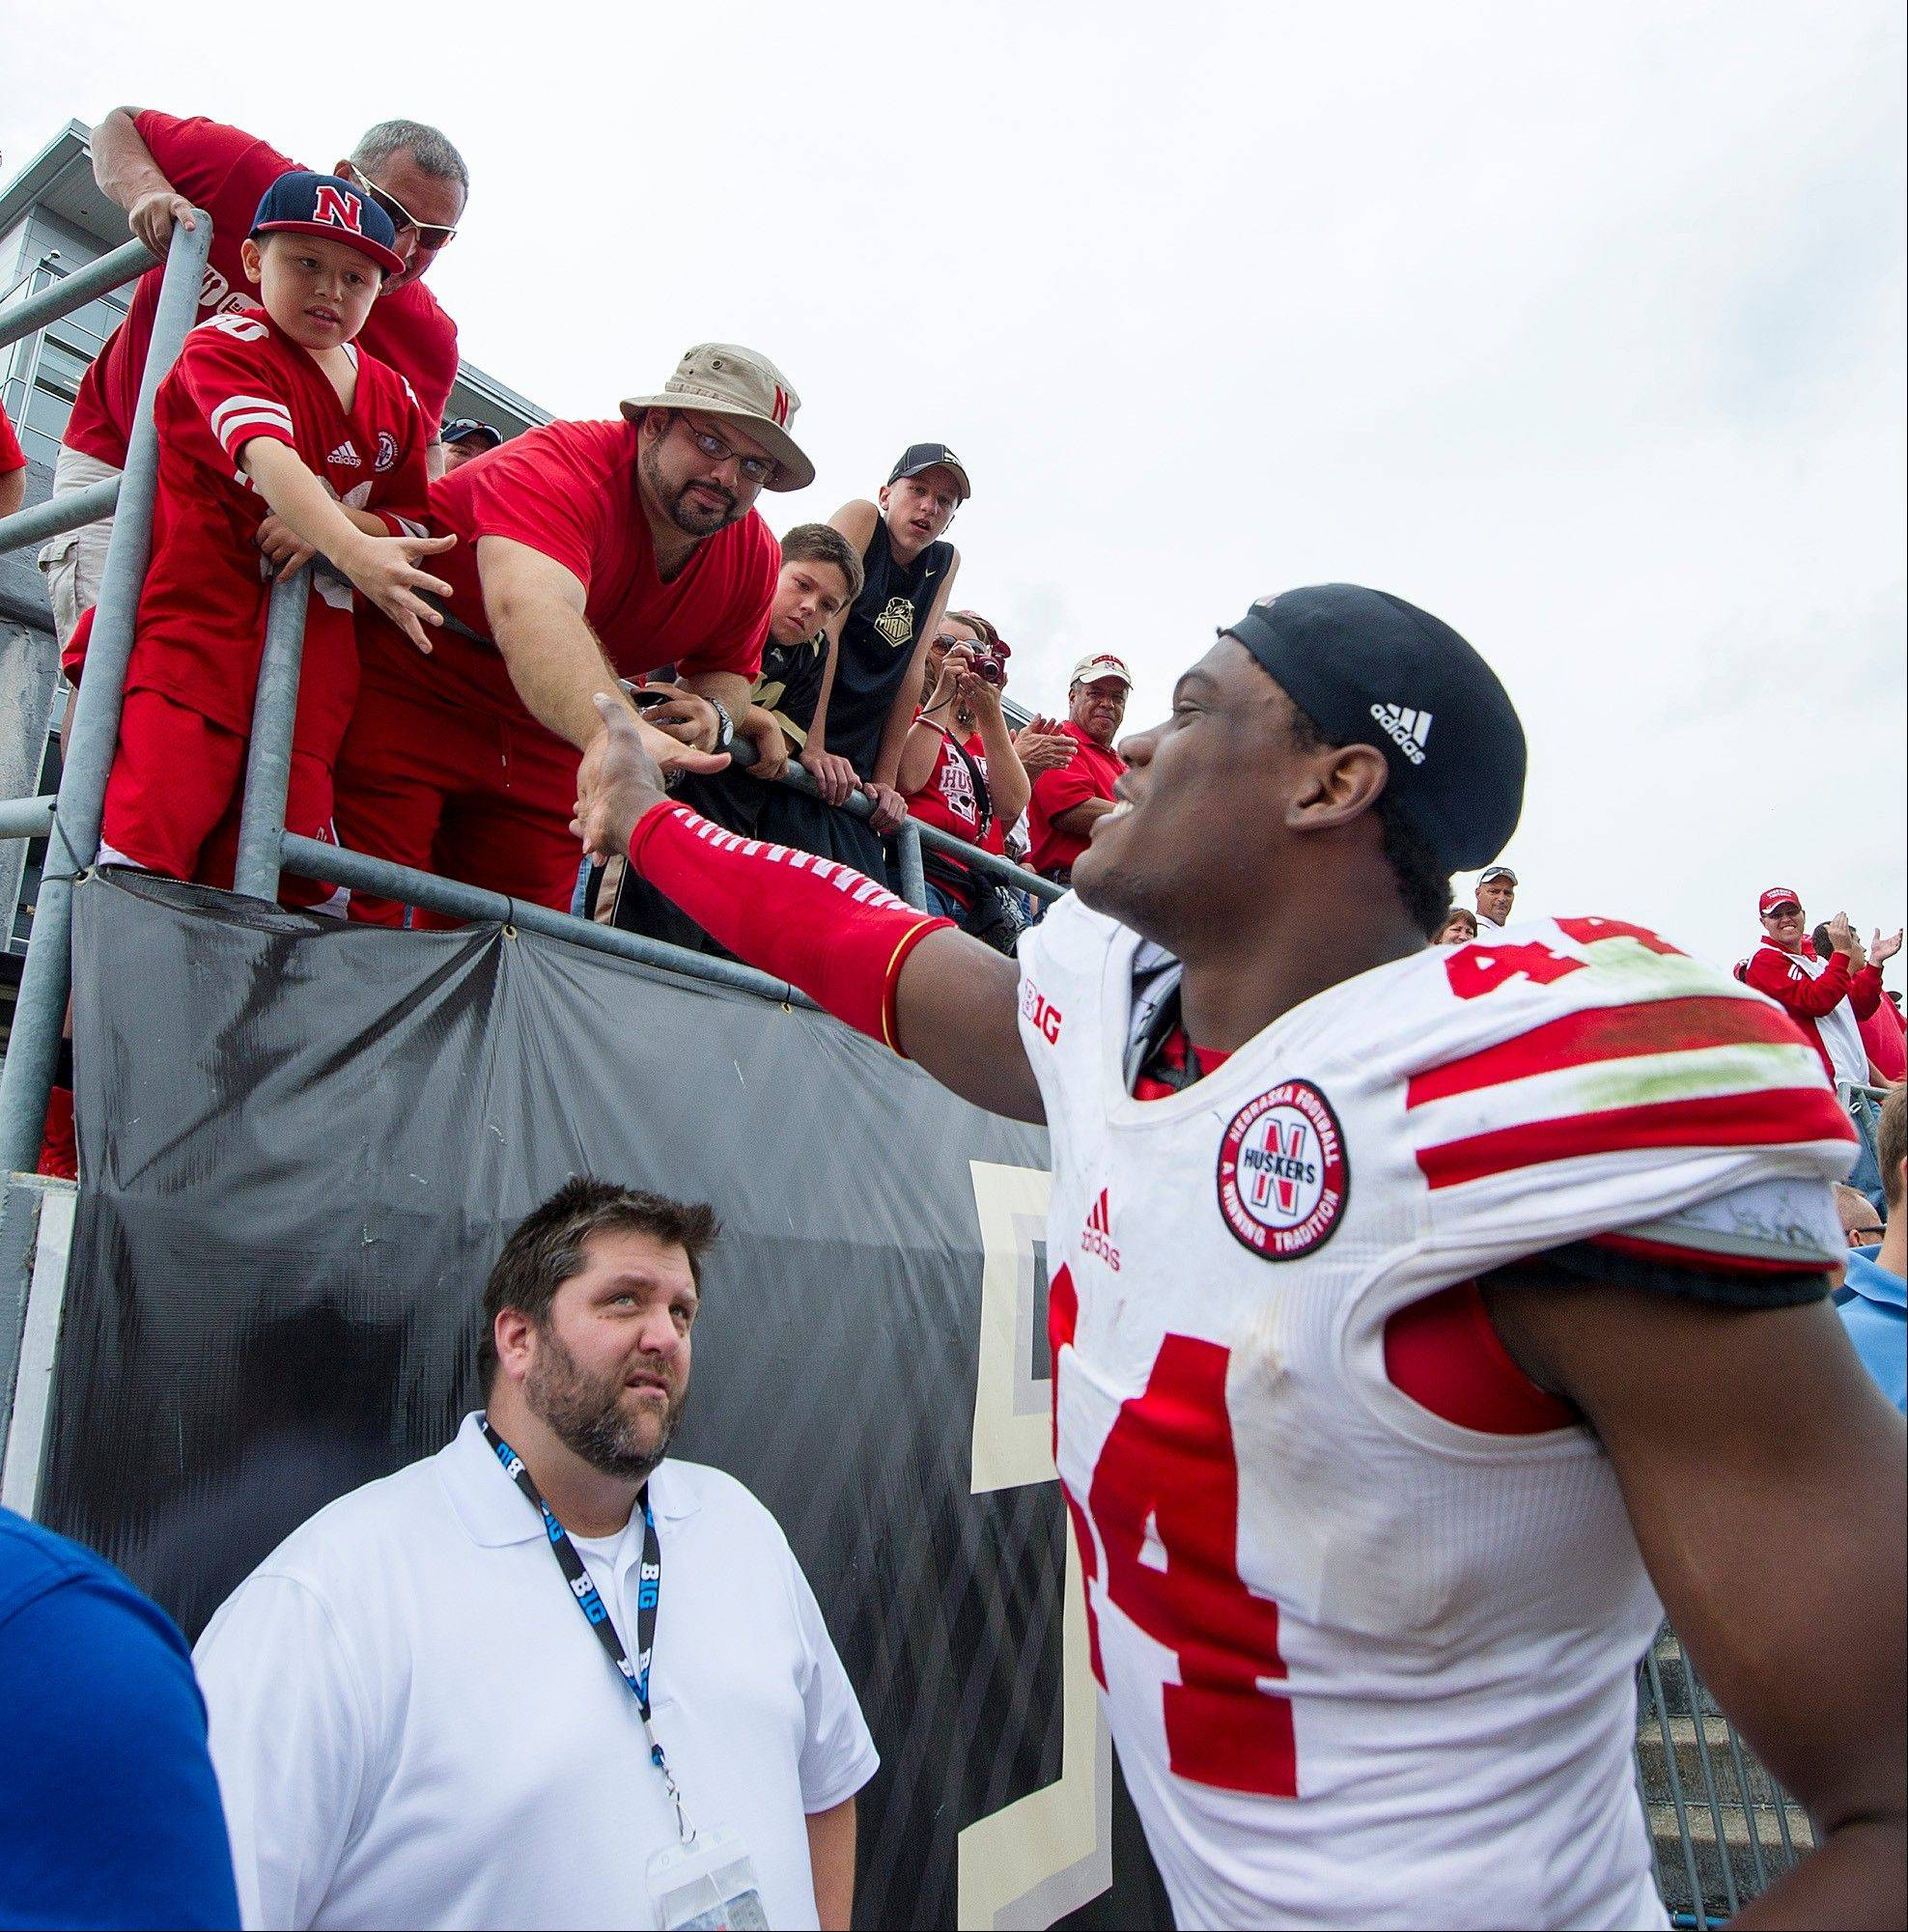 Nebraska�s Randy Gregory celebrates with fans as he leaves the field after a big win over Purdue on Saturday in West Lafayette, Ind.